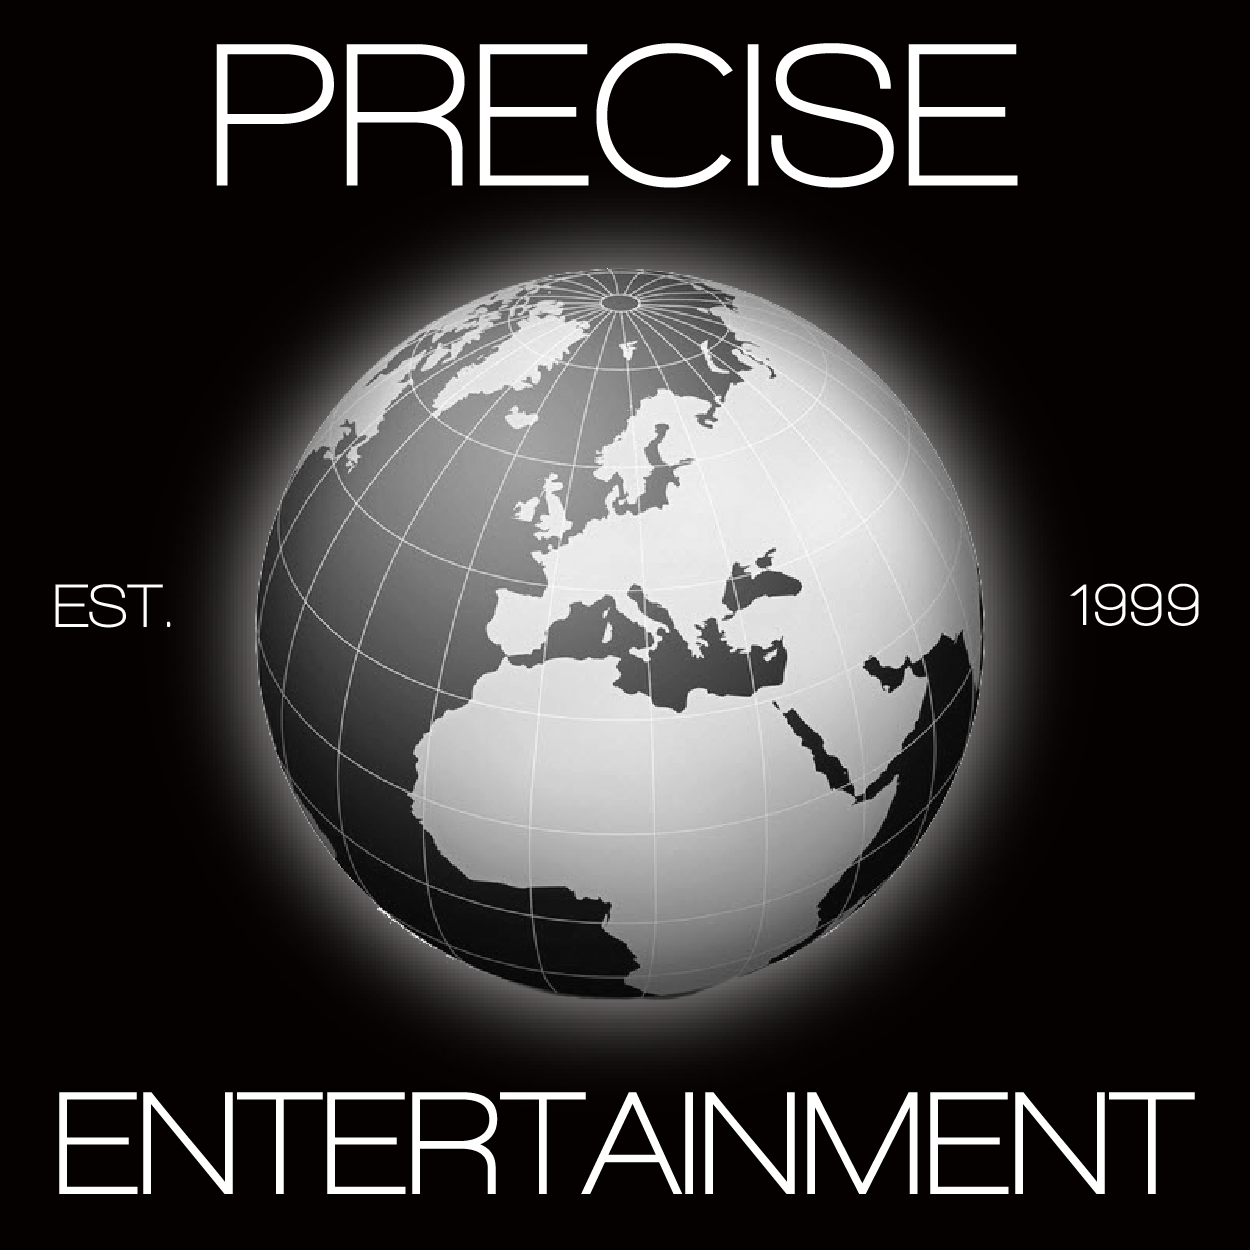 Precise Entertainment